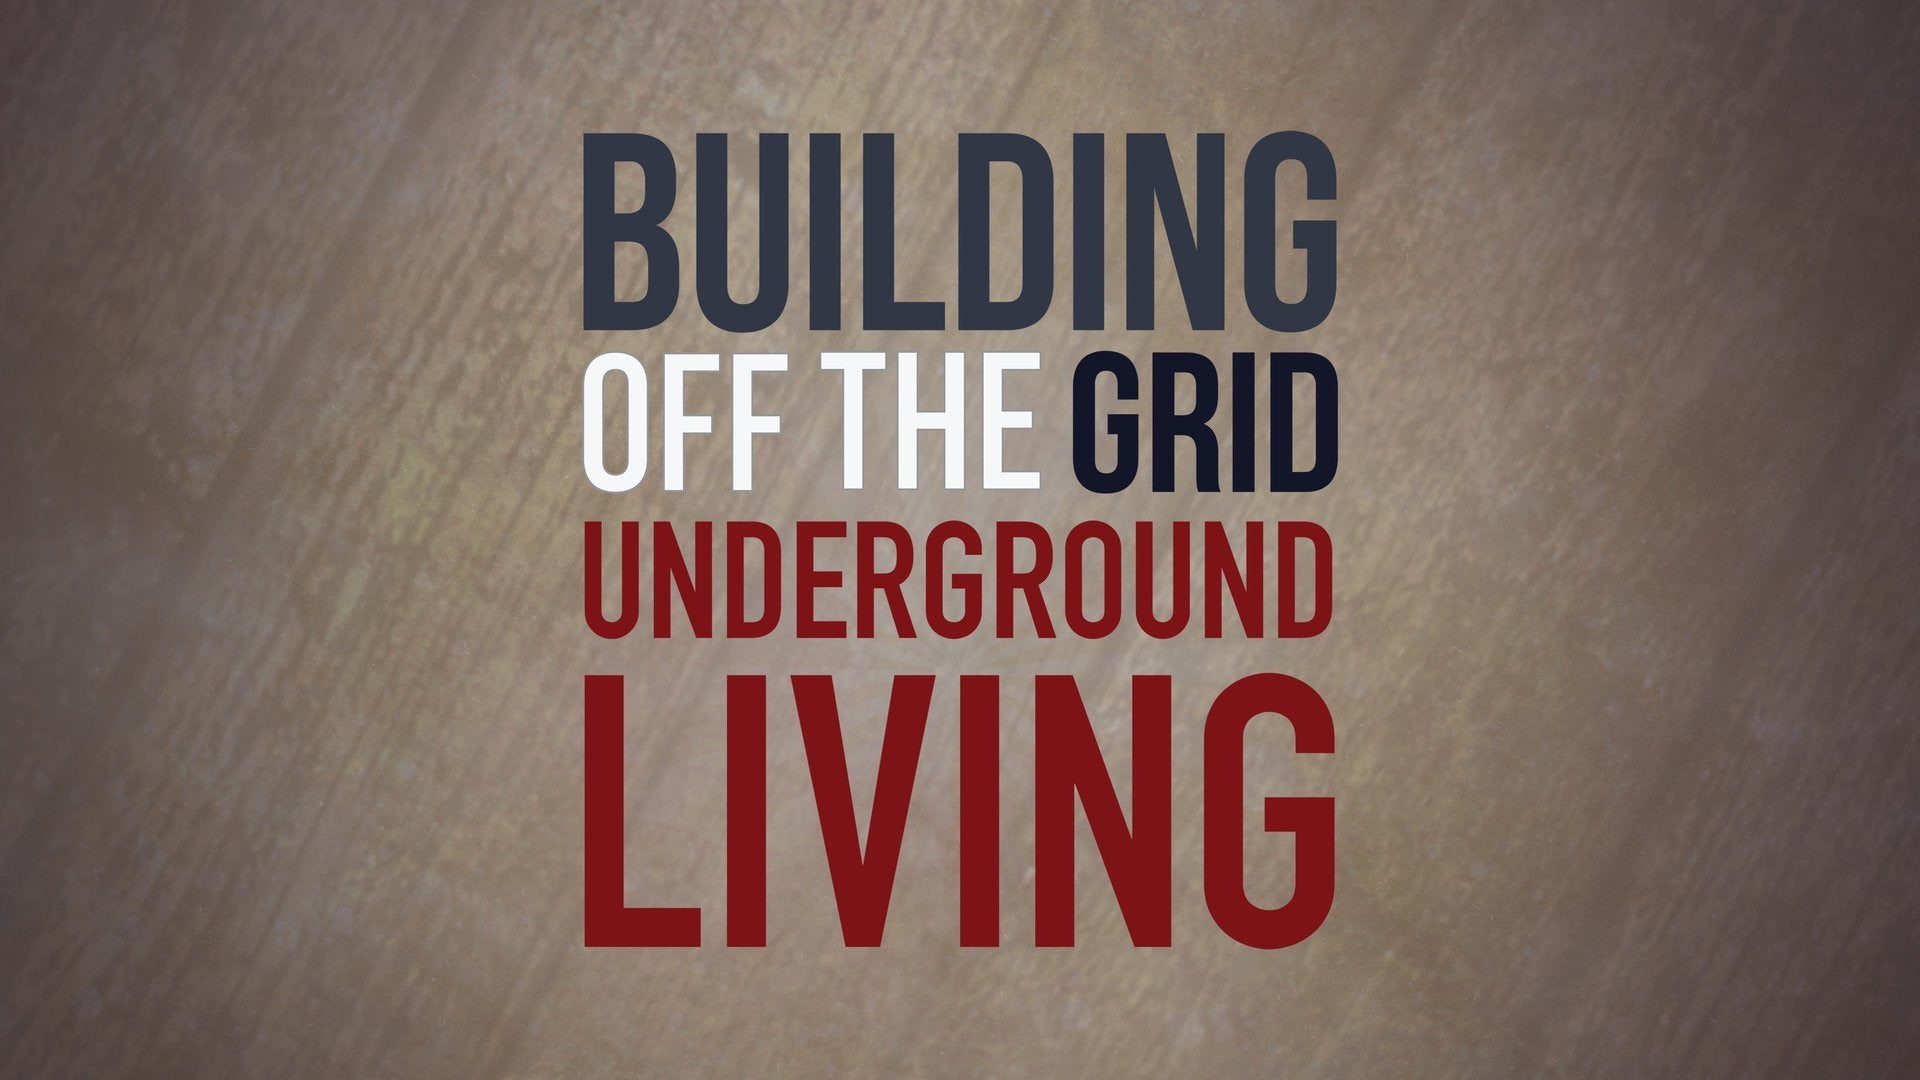 Building Off the Grid: Underground Living